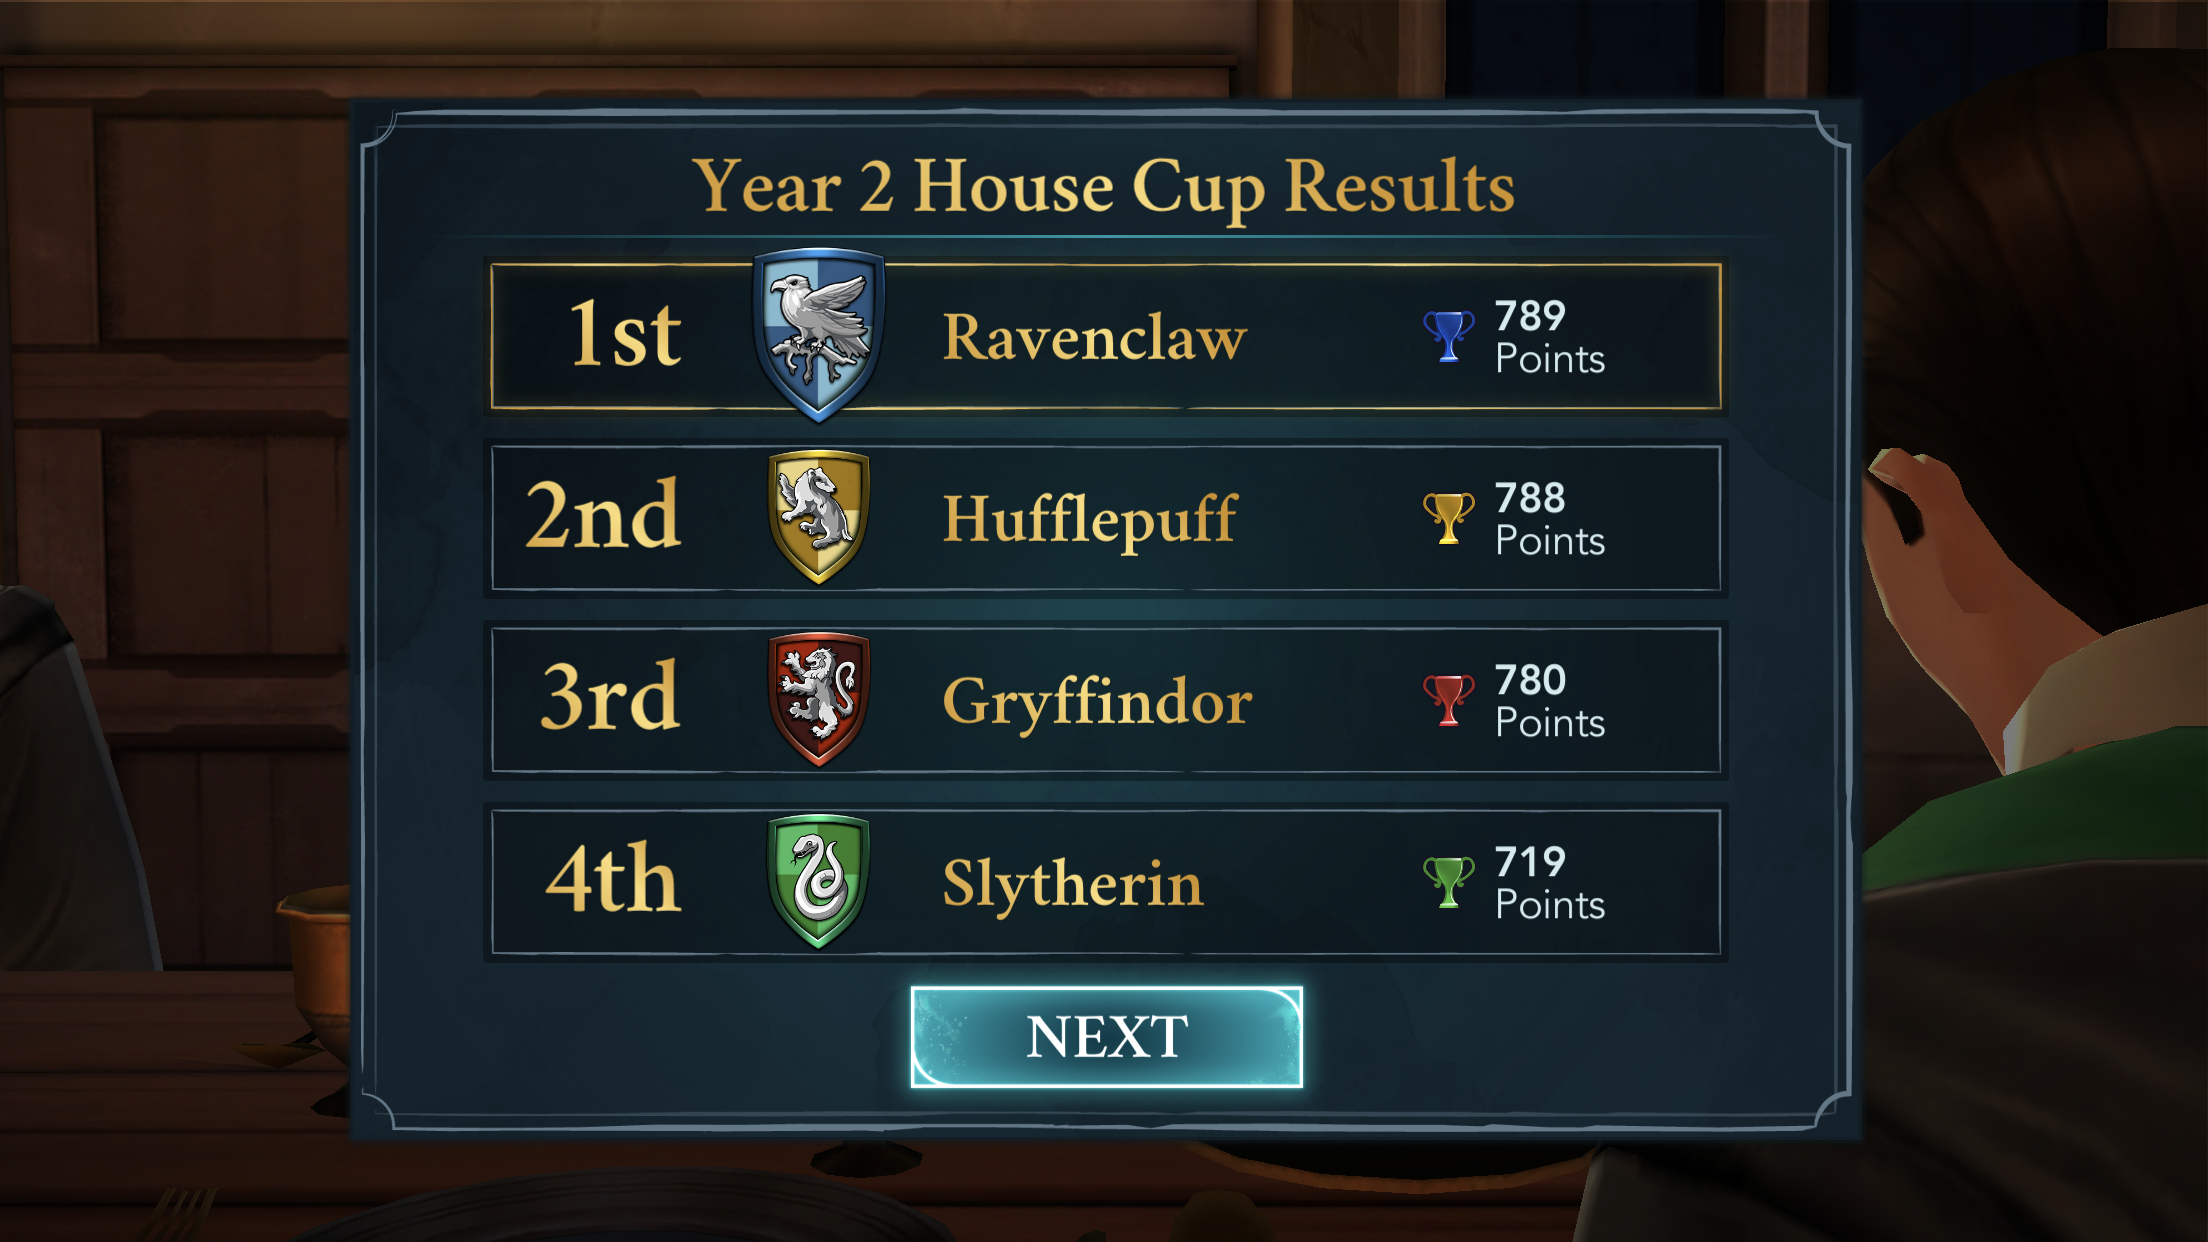 When You Though You Won The House Cup But Dumbledore Gives Points To Ravenclaw Last Minute Hogwarts Mystery Ravenclaw Slytherin